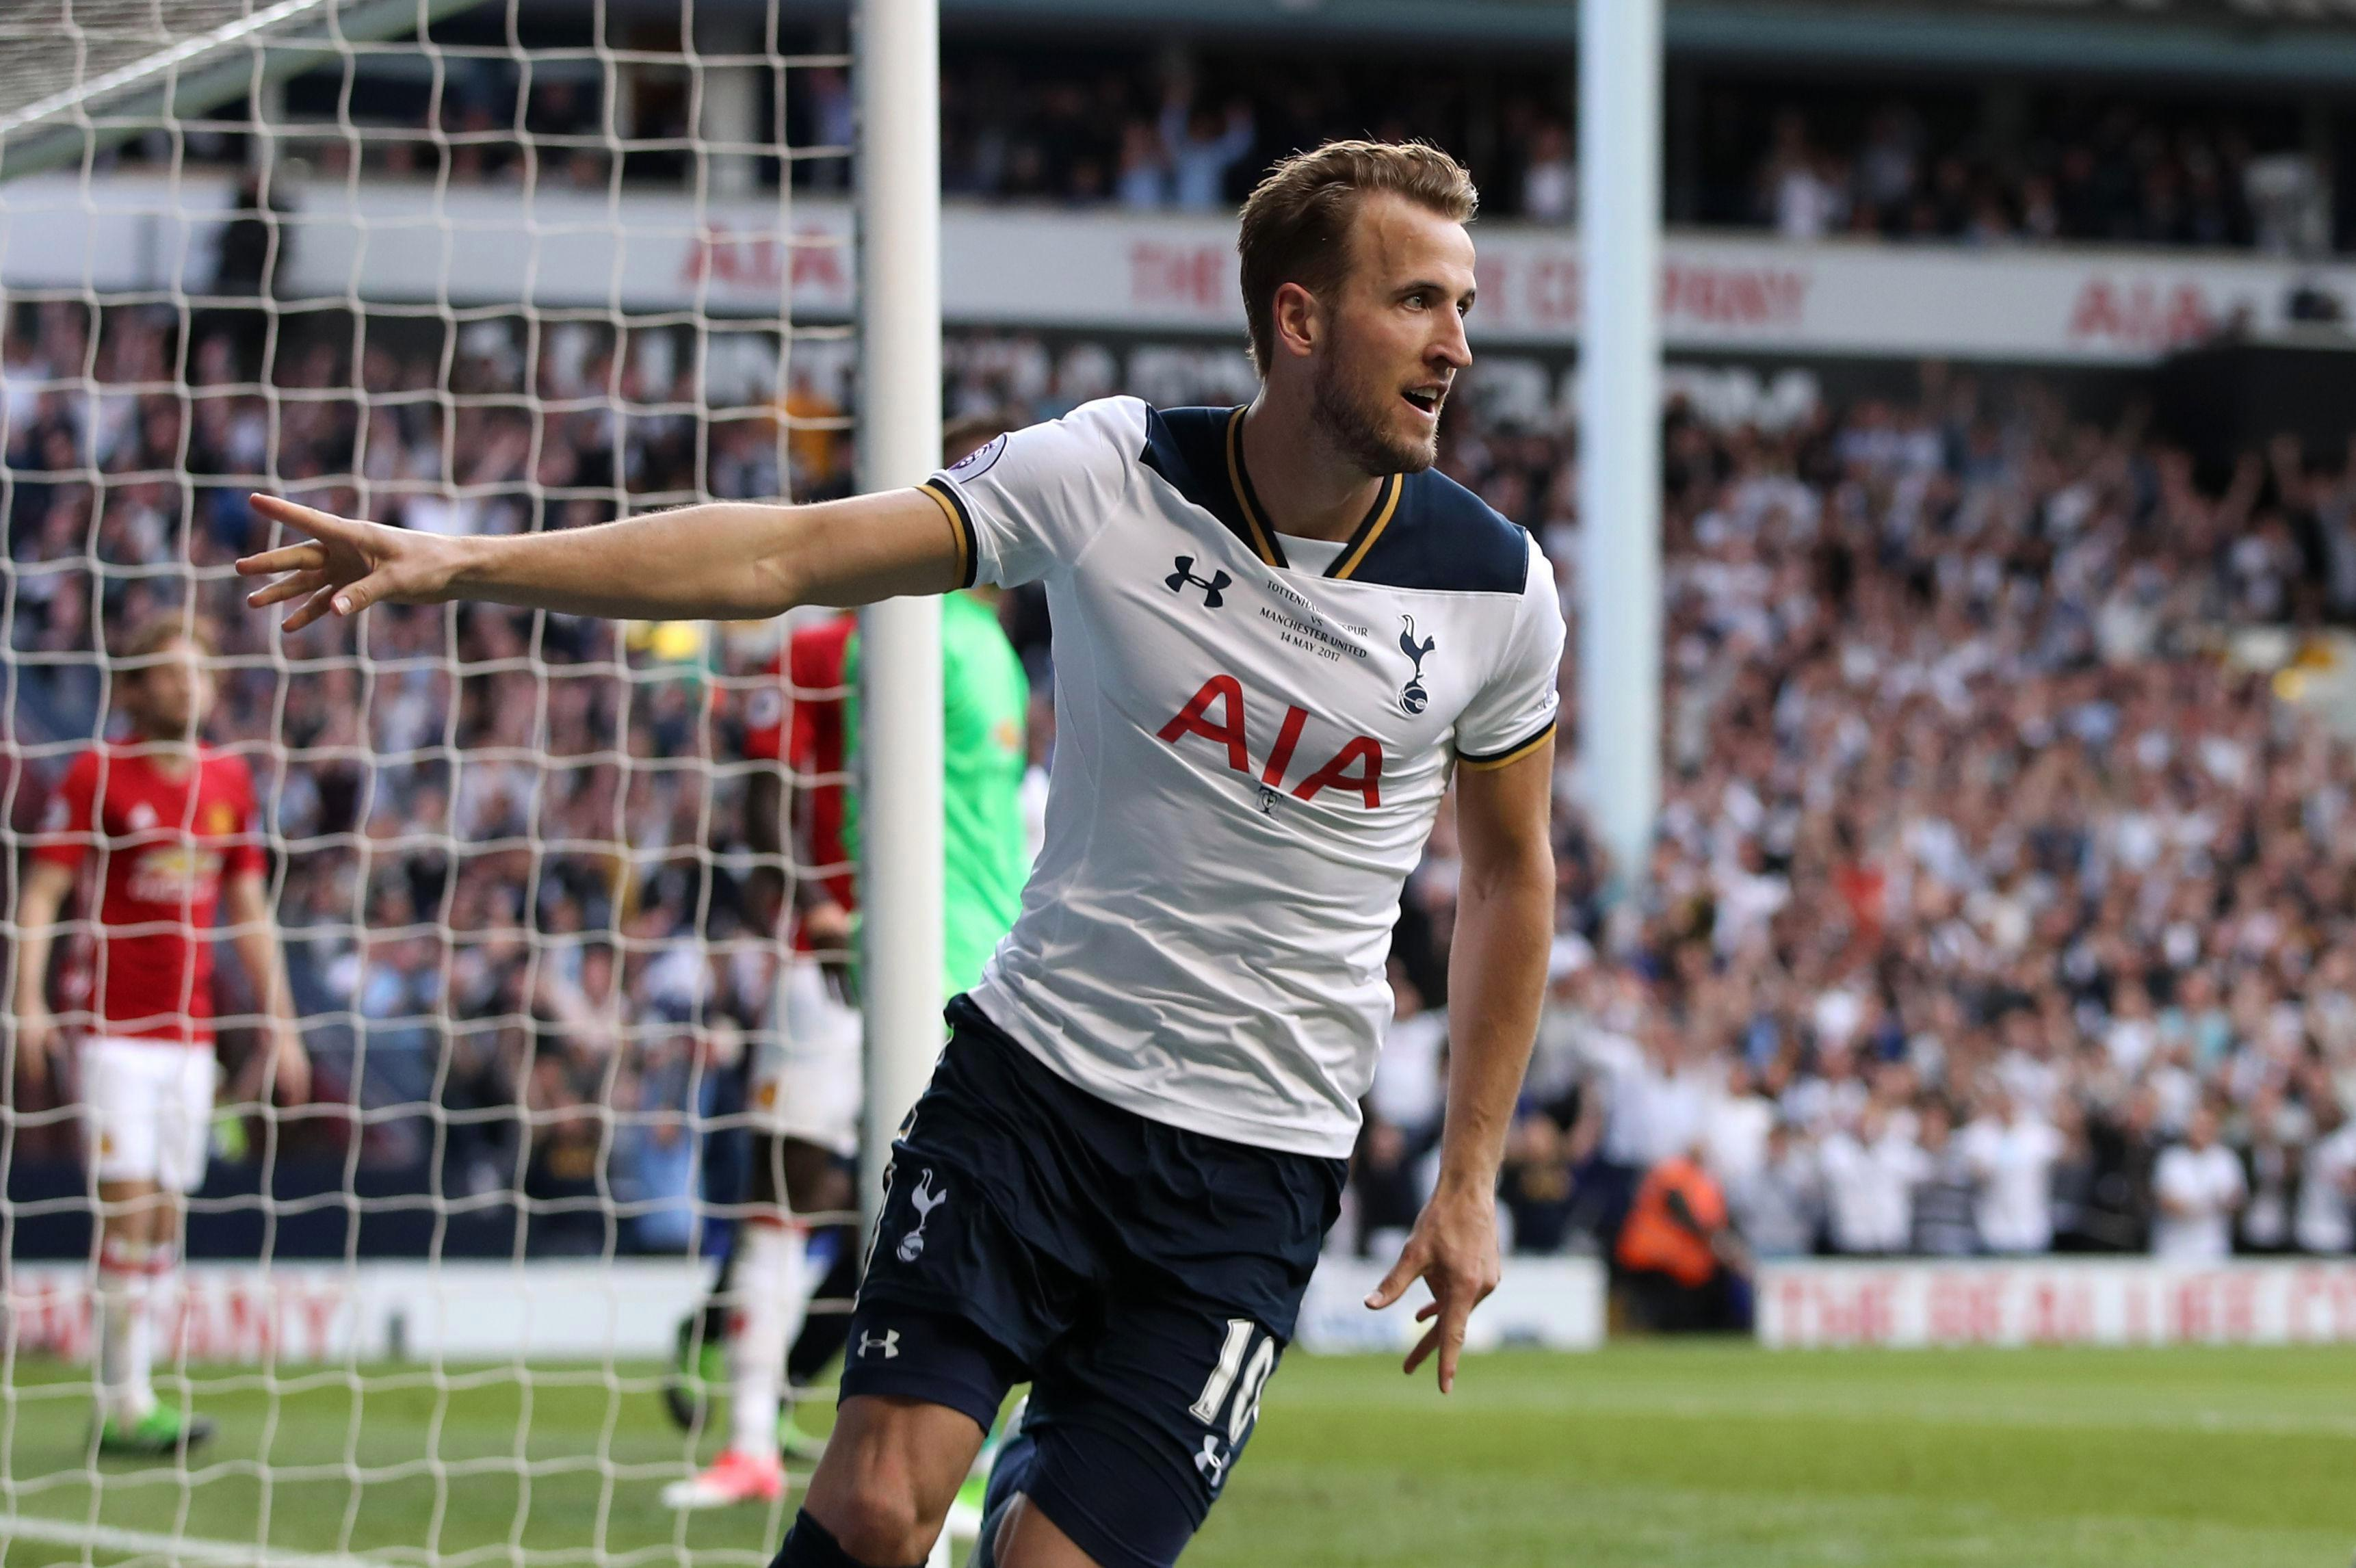 We are backing Harry Kane to smash home another goal against Leicester